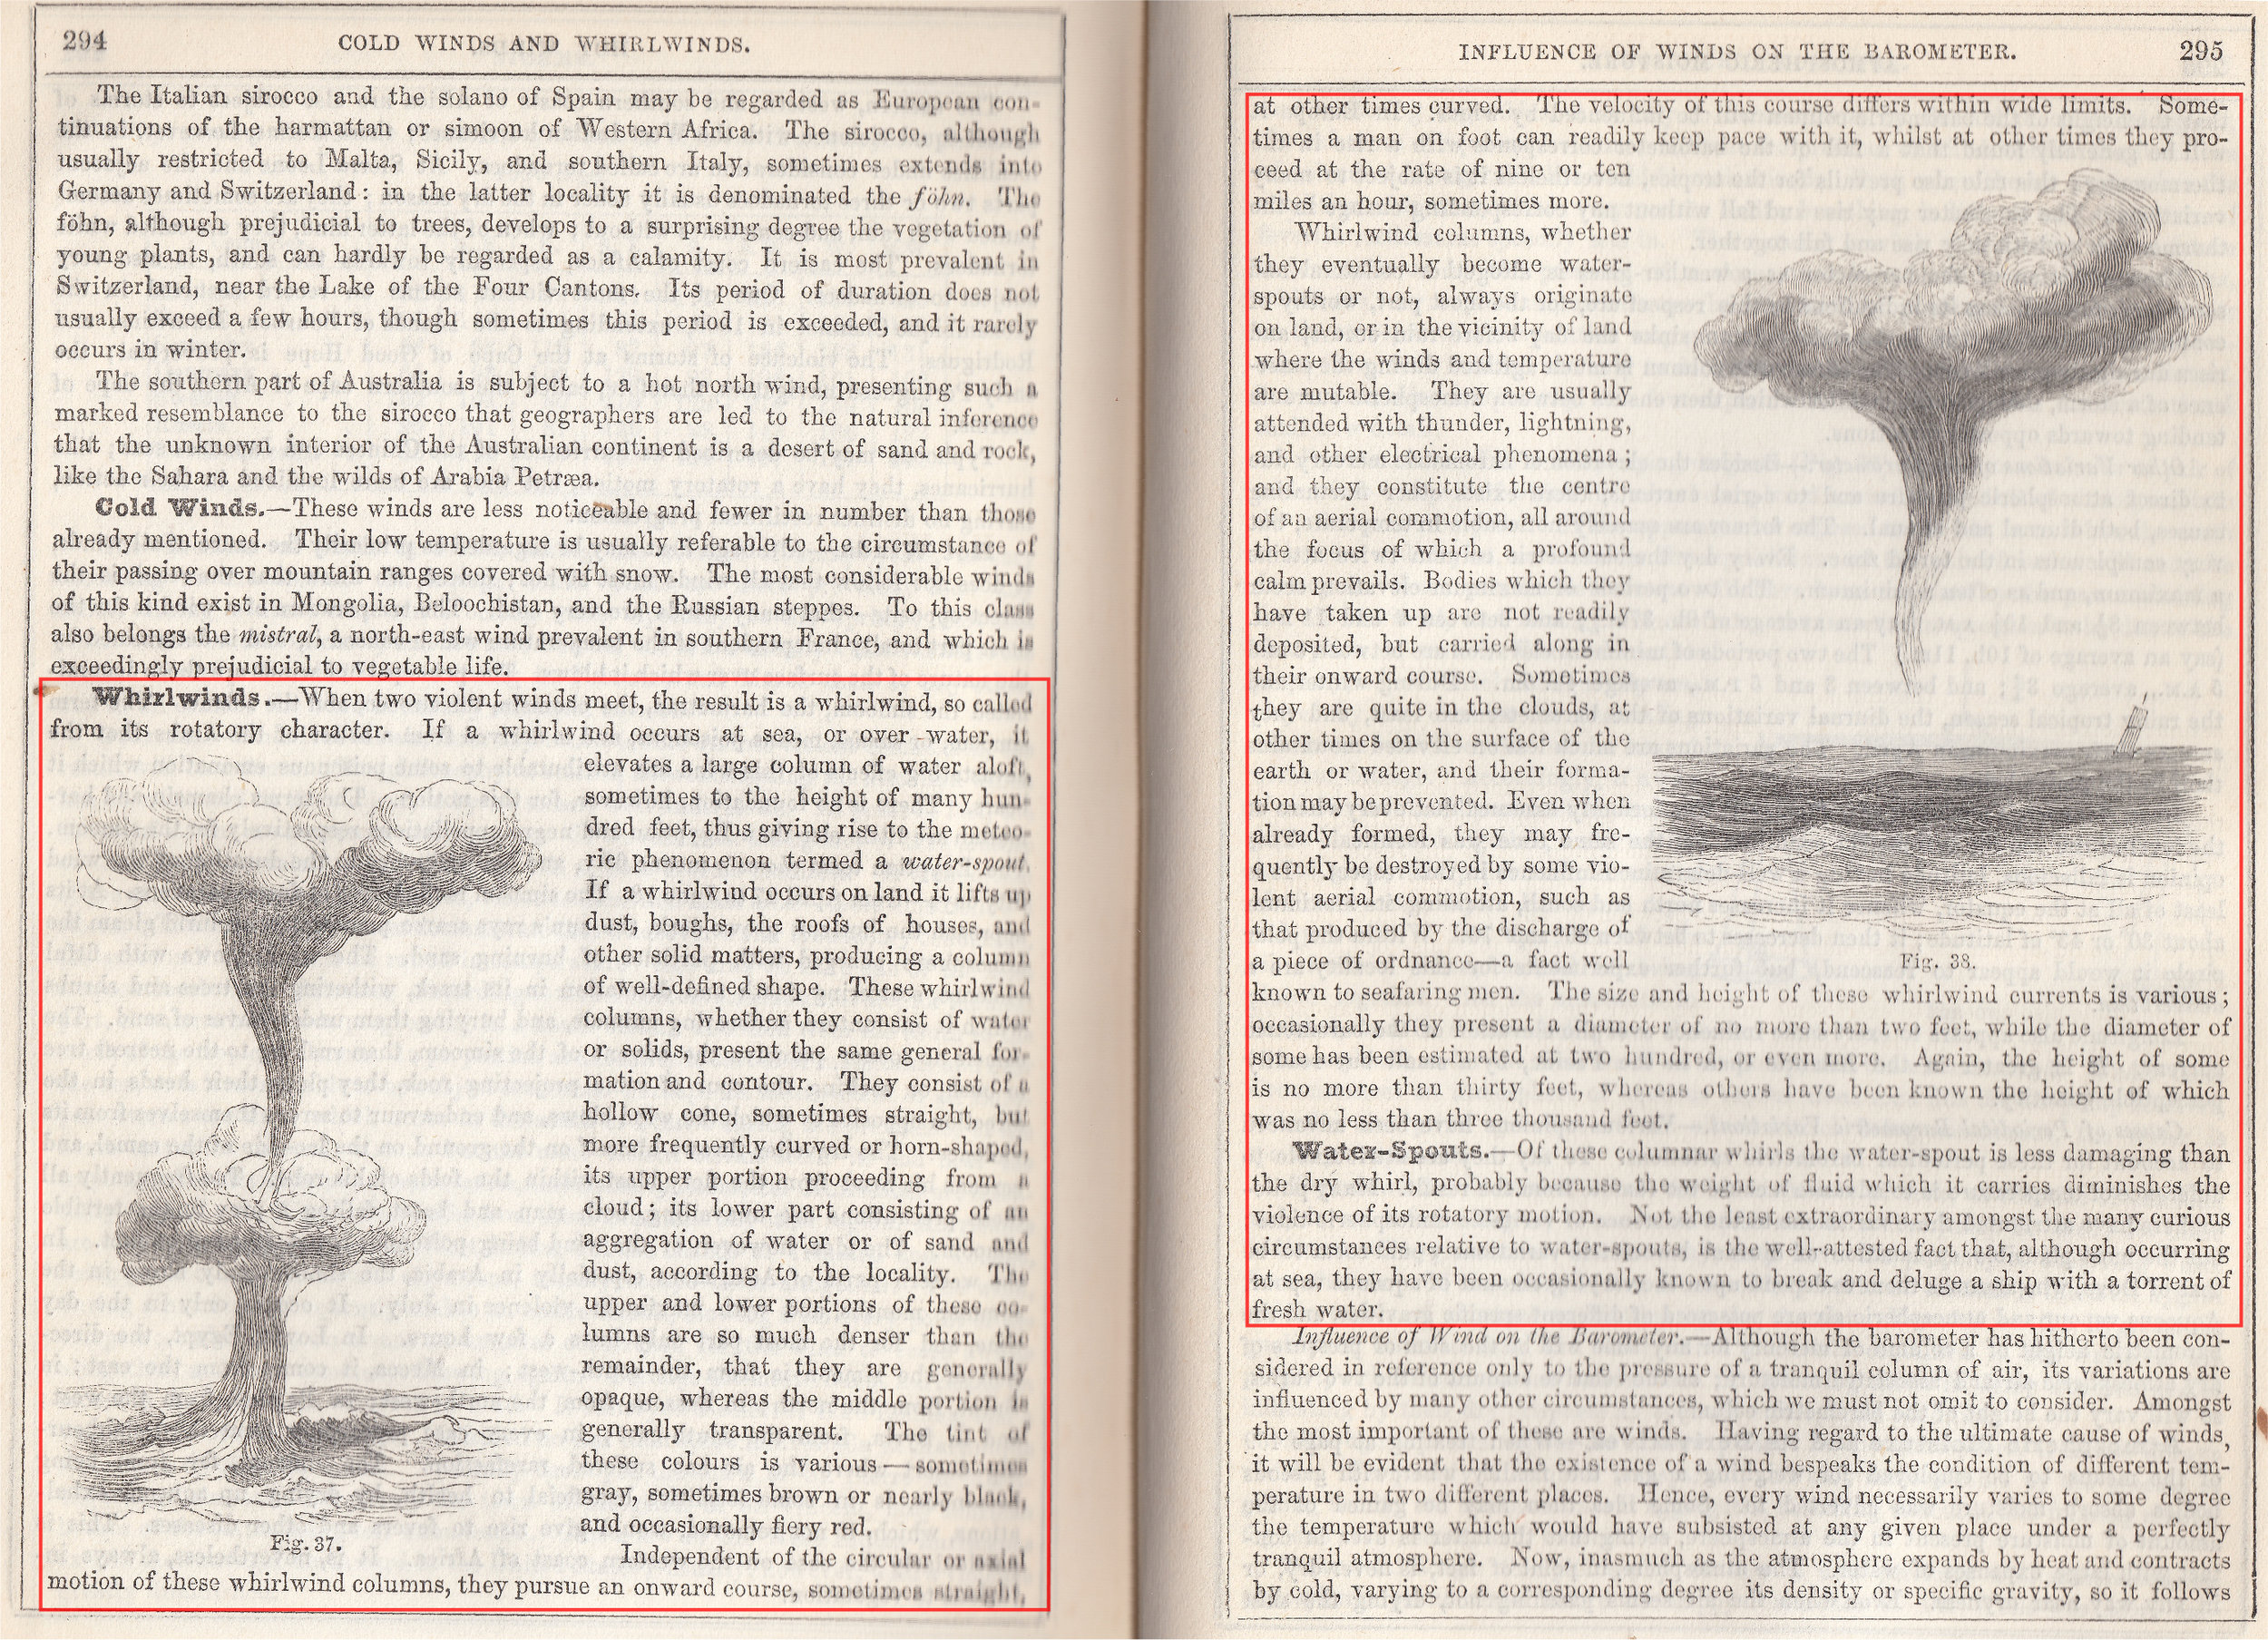 "Depiction of tornadoes and waterspouts from ""Natural history of the inanimate creation"".  source:    Ansted, D. T.  ,  E. Smith, H. Green, J. Scoffern, and E. J. Lowe, 1856.   Natural history of the inanimate creation : being a guide to the scenery of the heavens, the phenomena of the atmosphere, the structure and geological features of the earth, and its botanical productions . London, Houston and Stoneman, 65, Paternoster Row; Wm. S. Orr and Co., Amen Corner. (via the Library of the  Manchester Museum )"